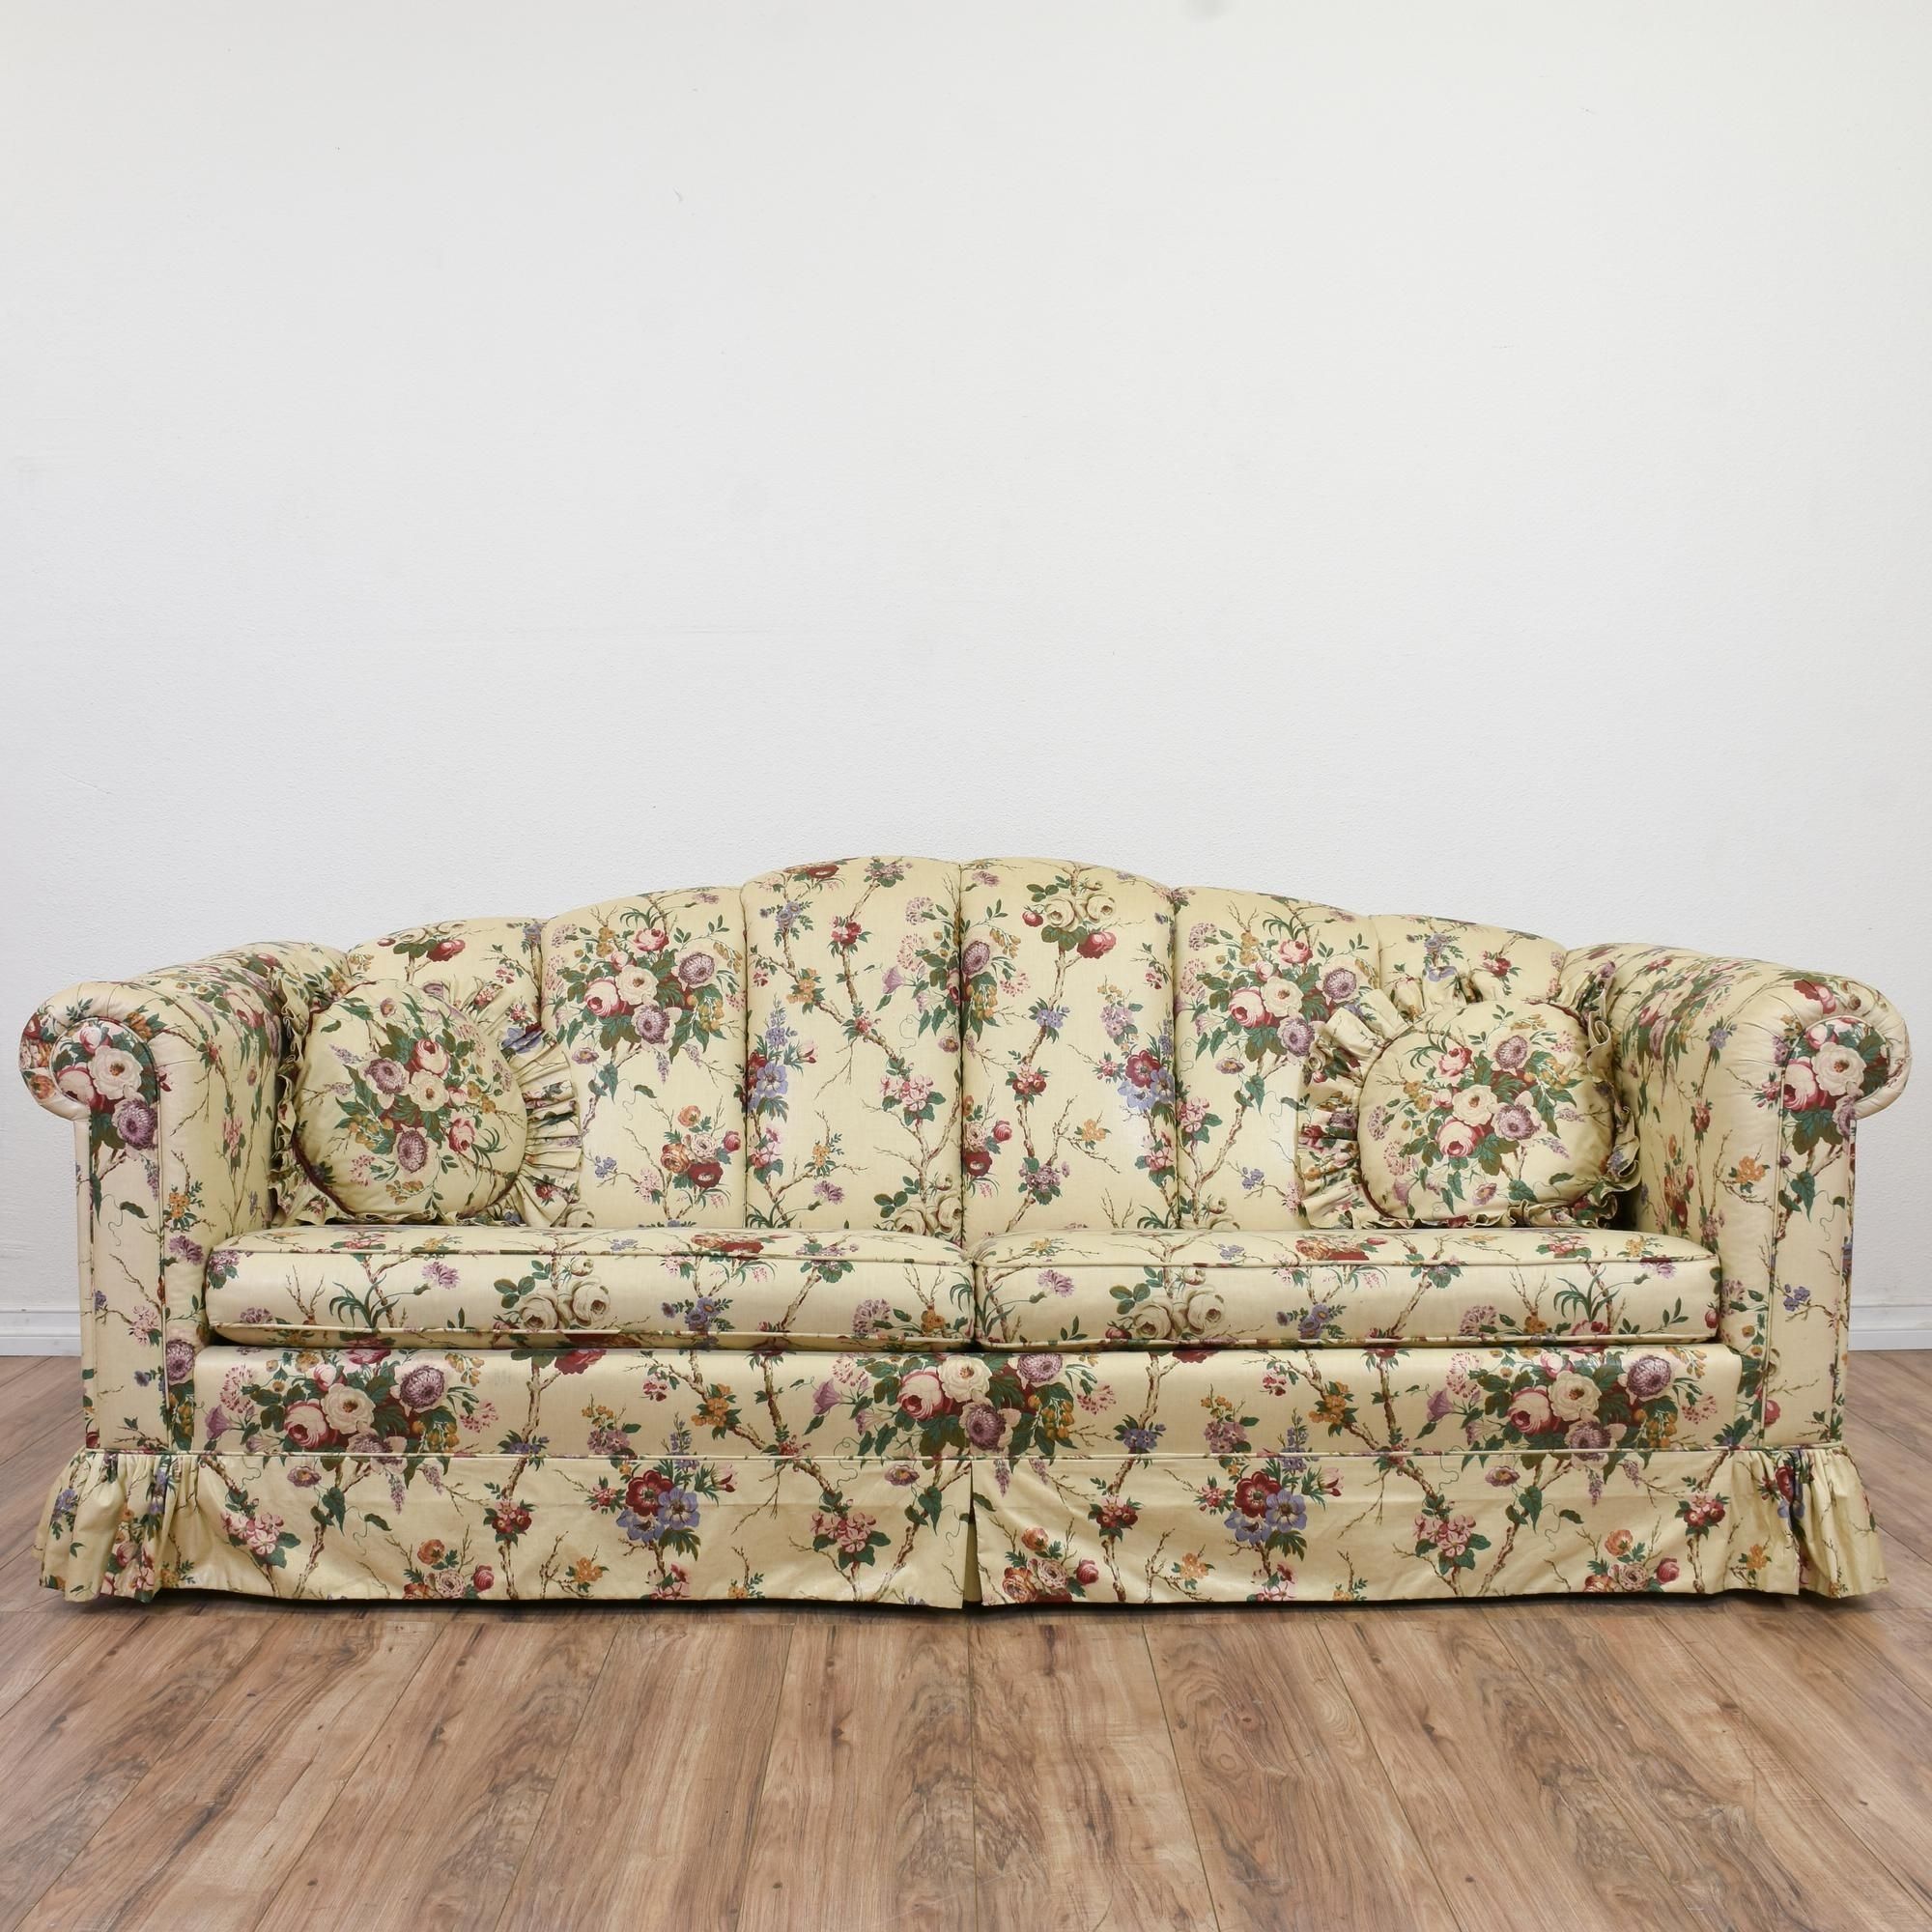 Most Popular Chintz Sofas With This Sofa Is Upholstered In A Durable Off White Beige, Pink And (View 13 of 15)